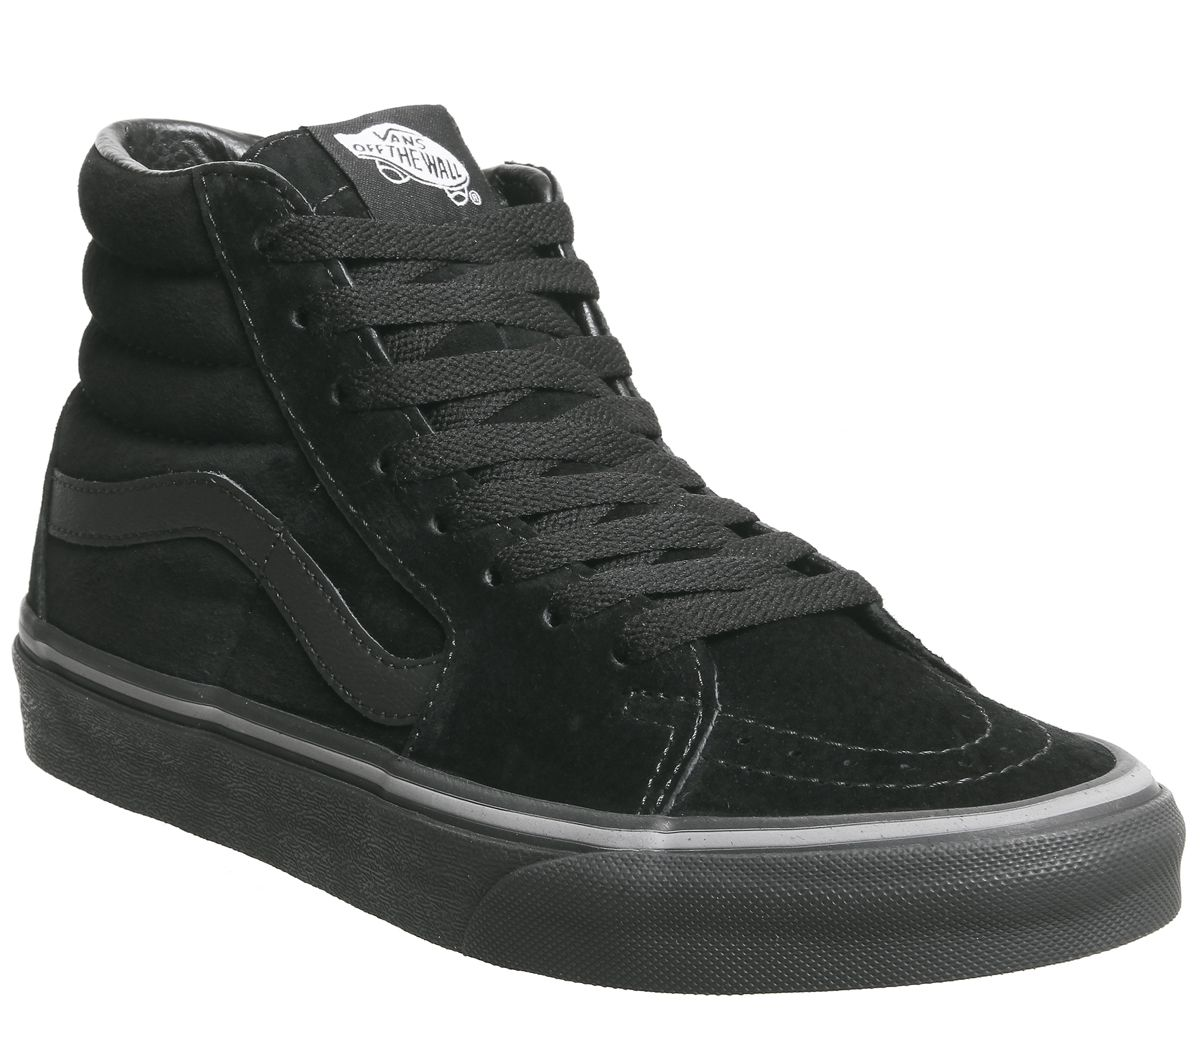 628afc478a8069 Vans Sk8 Hi Trainers Pirate Black Frost Grey - Unisex Sports